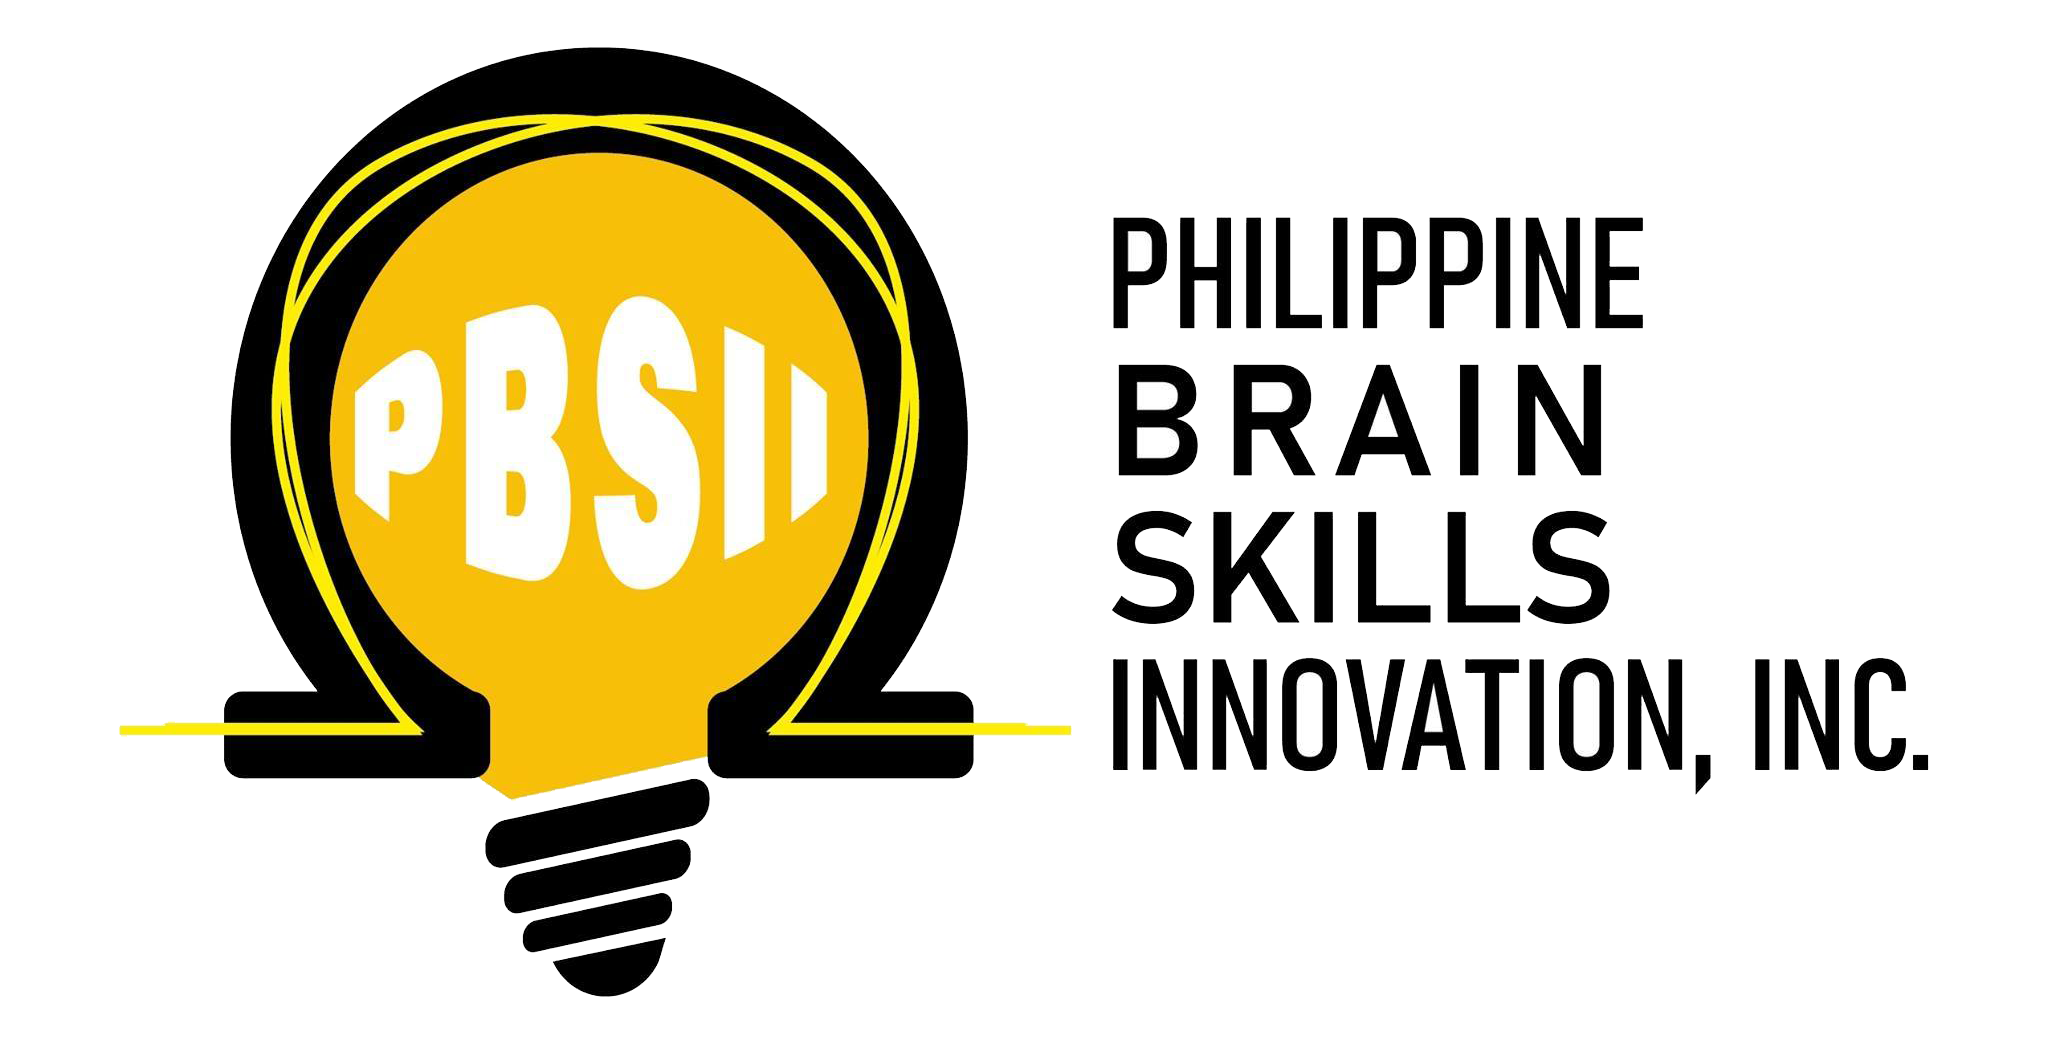 Philippine Brain Skills Innovation Group Inc. Logo